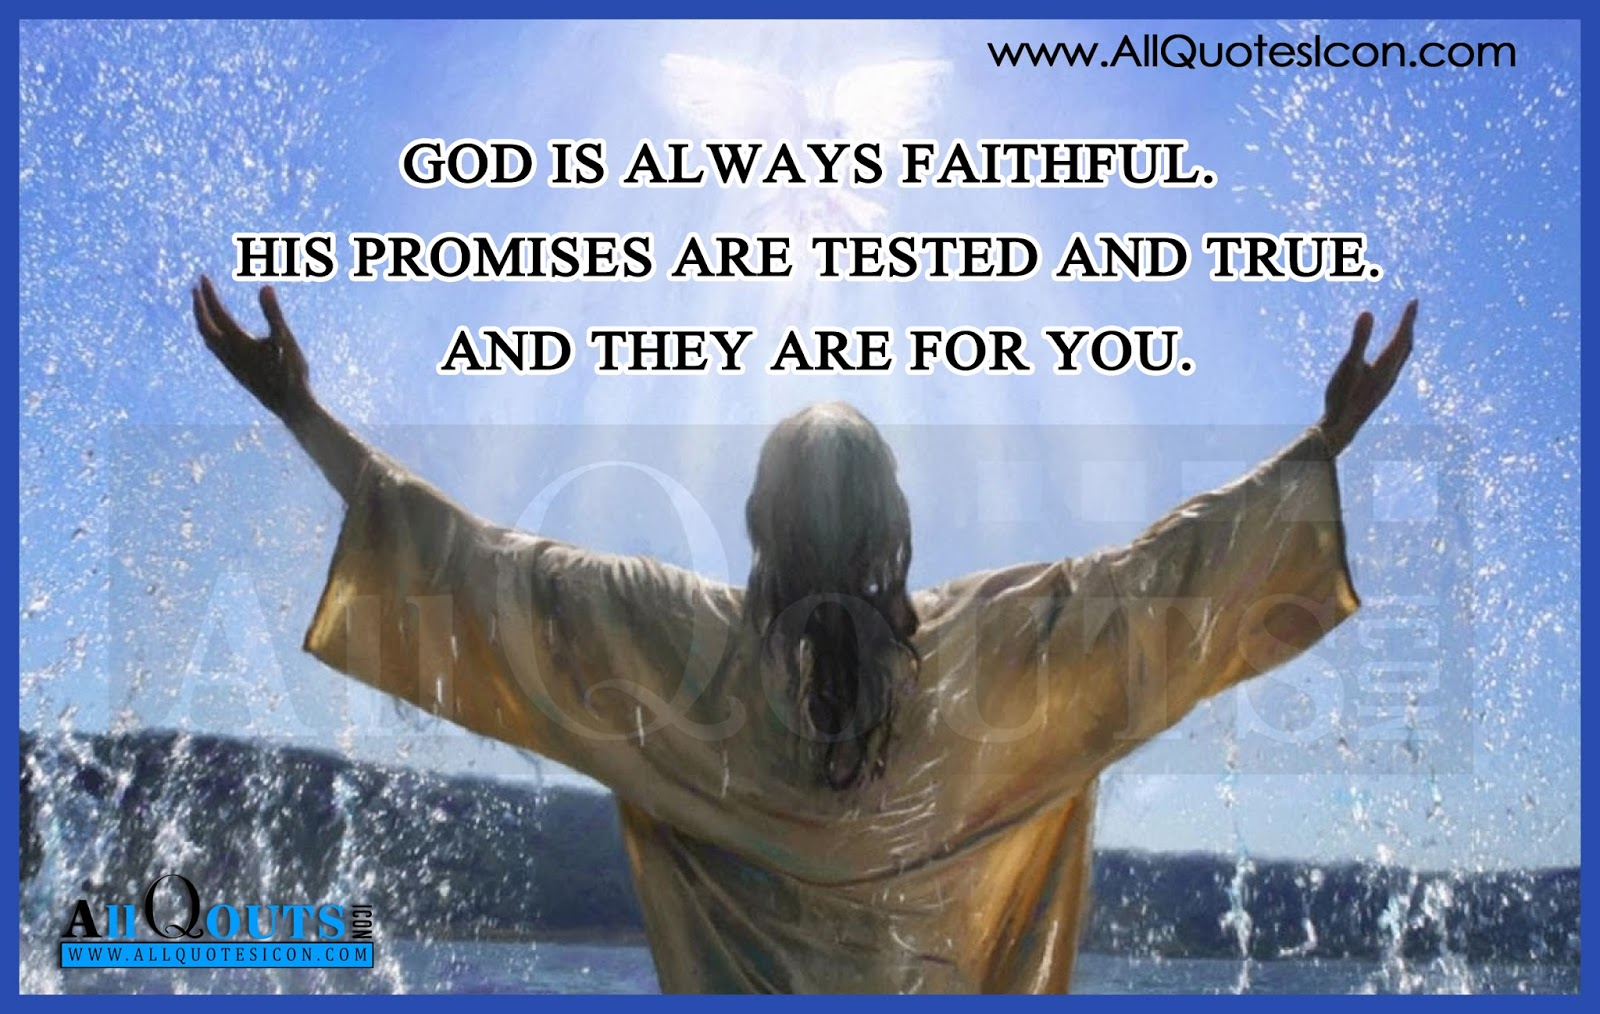 Jesus Christ Quotes in English HD Wallpapers Top Bible